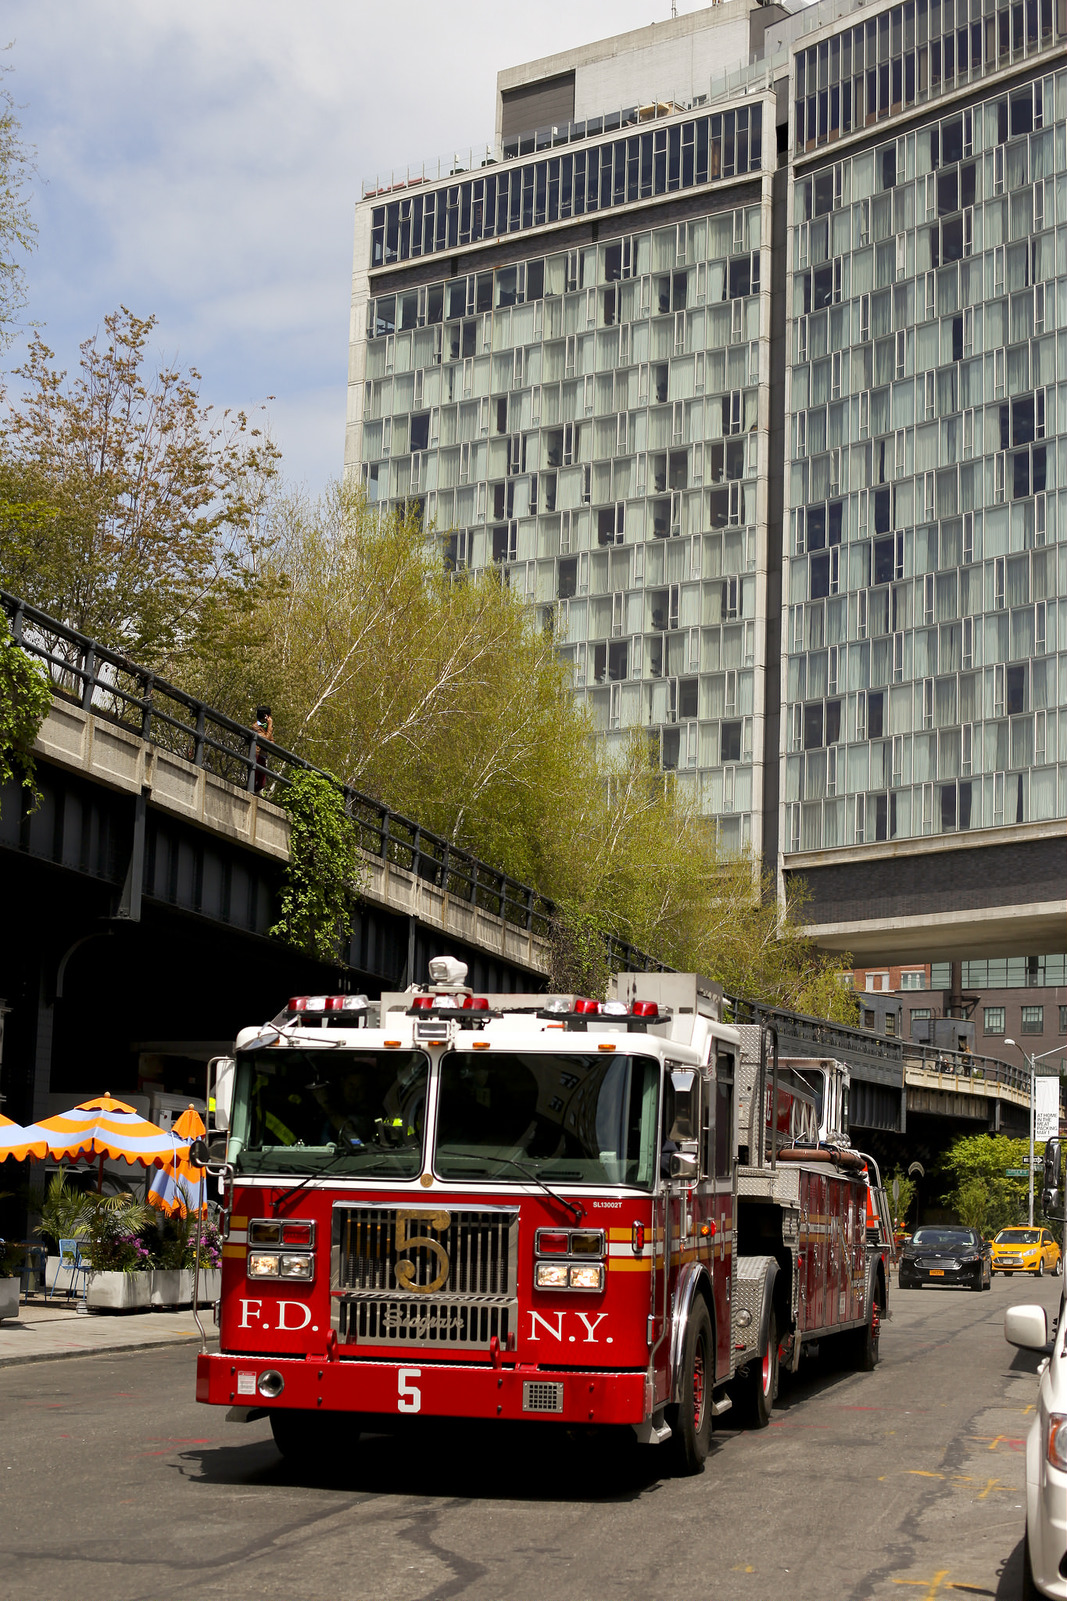 Fire-truck and the Standard Hotel